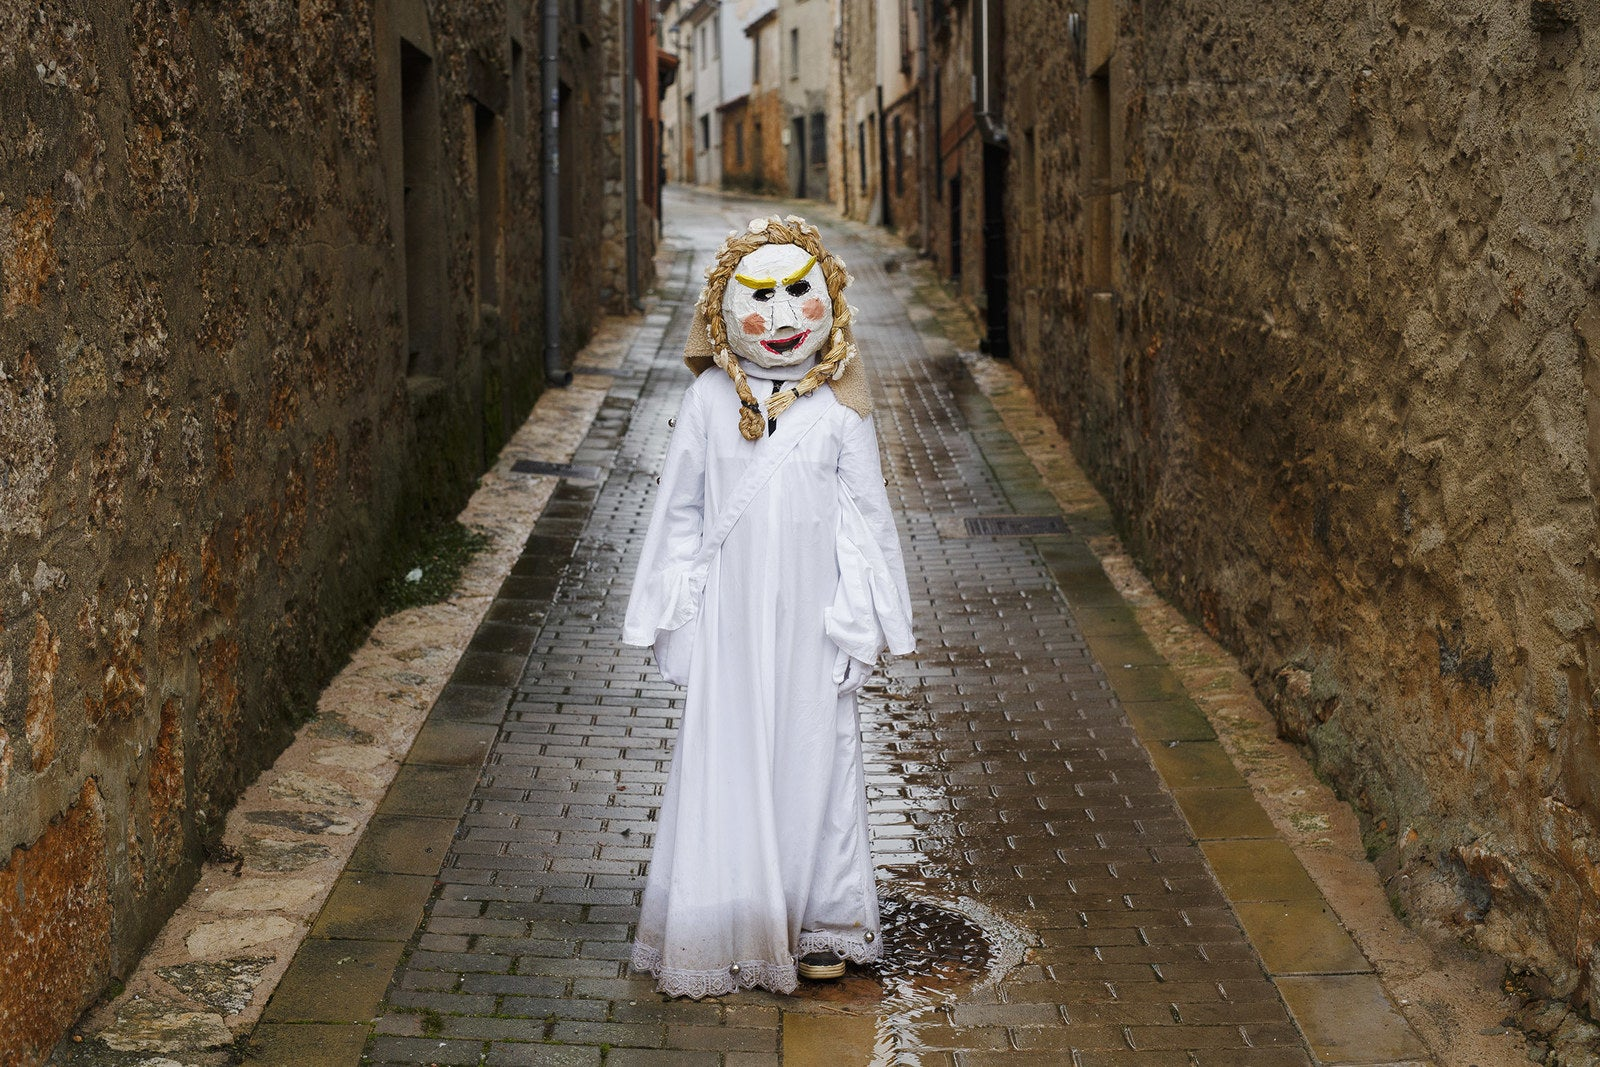 A reveler dressed as a child poses for pictures during El Gallo de Carnaval, or the Rooster Carnival, on Feb. 11 in Mecerreyes, Spain. During the Carnavaladas y Zarramacadas, people take to the streets in costumes made with ropes, bones, skins, scraps of cloth, oak leaves, and other rural items.